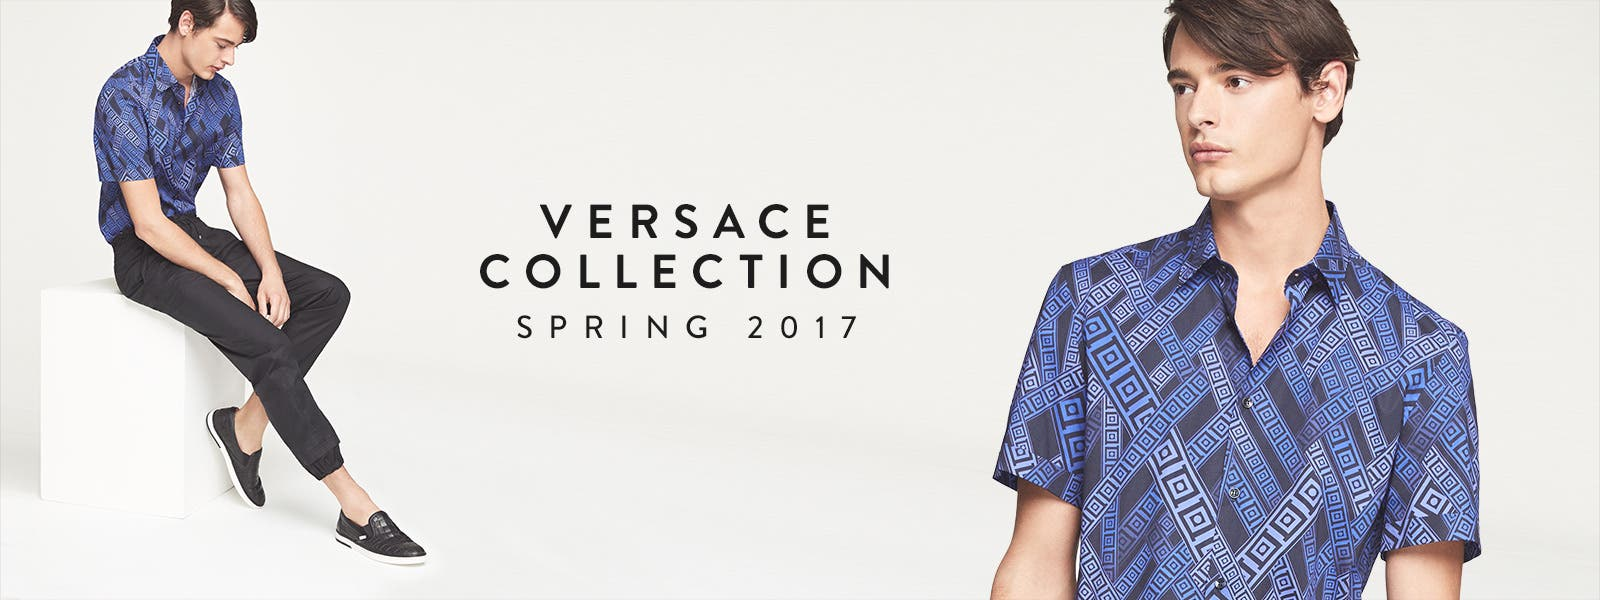 Spring 2017 men's designer collections: Versace Collection.